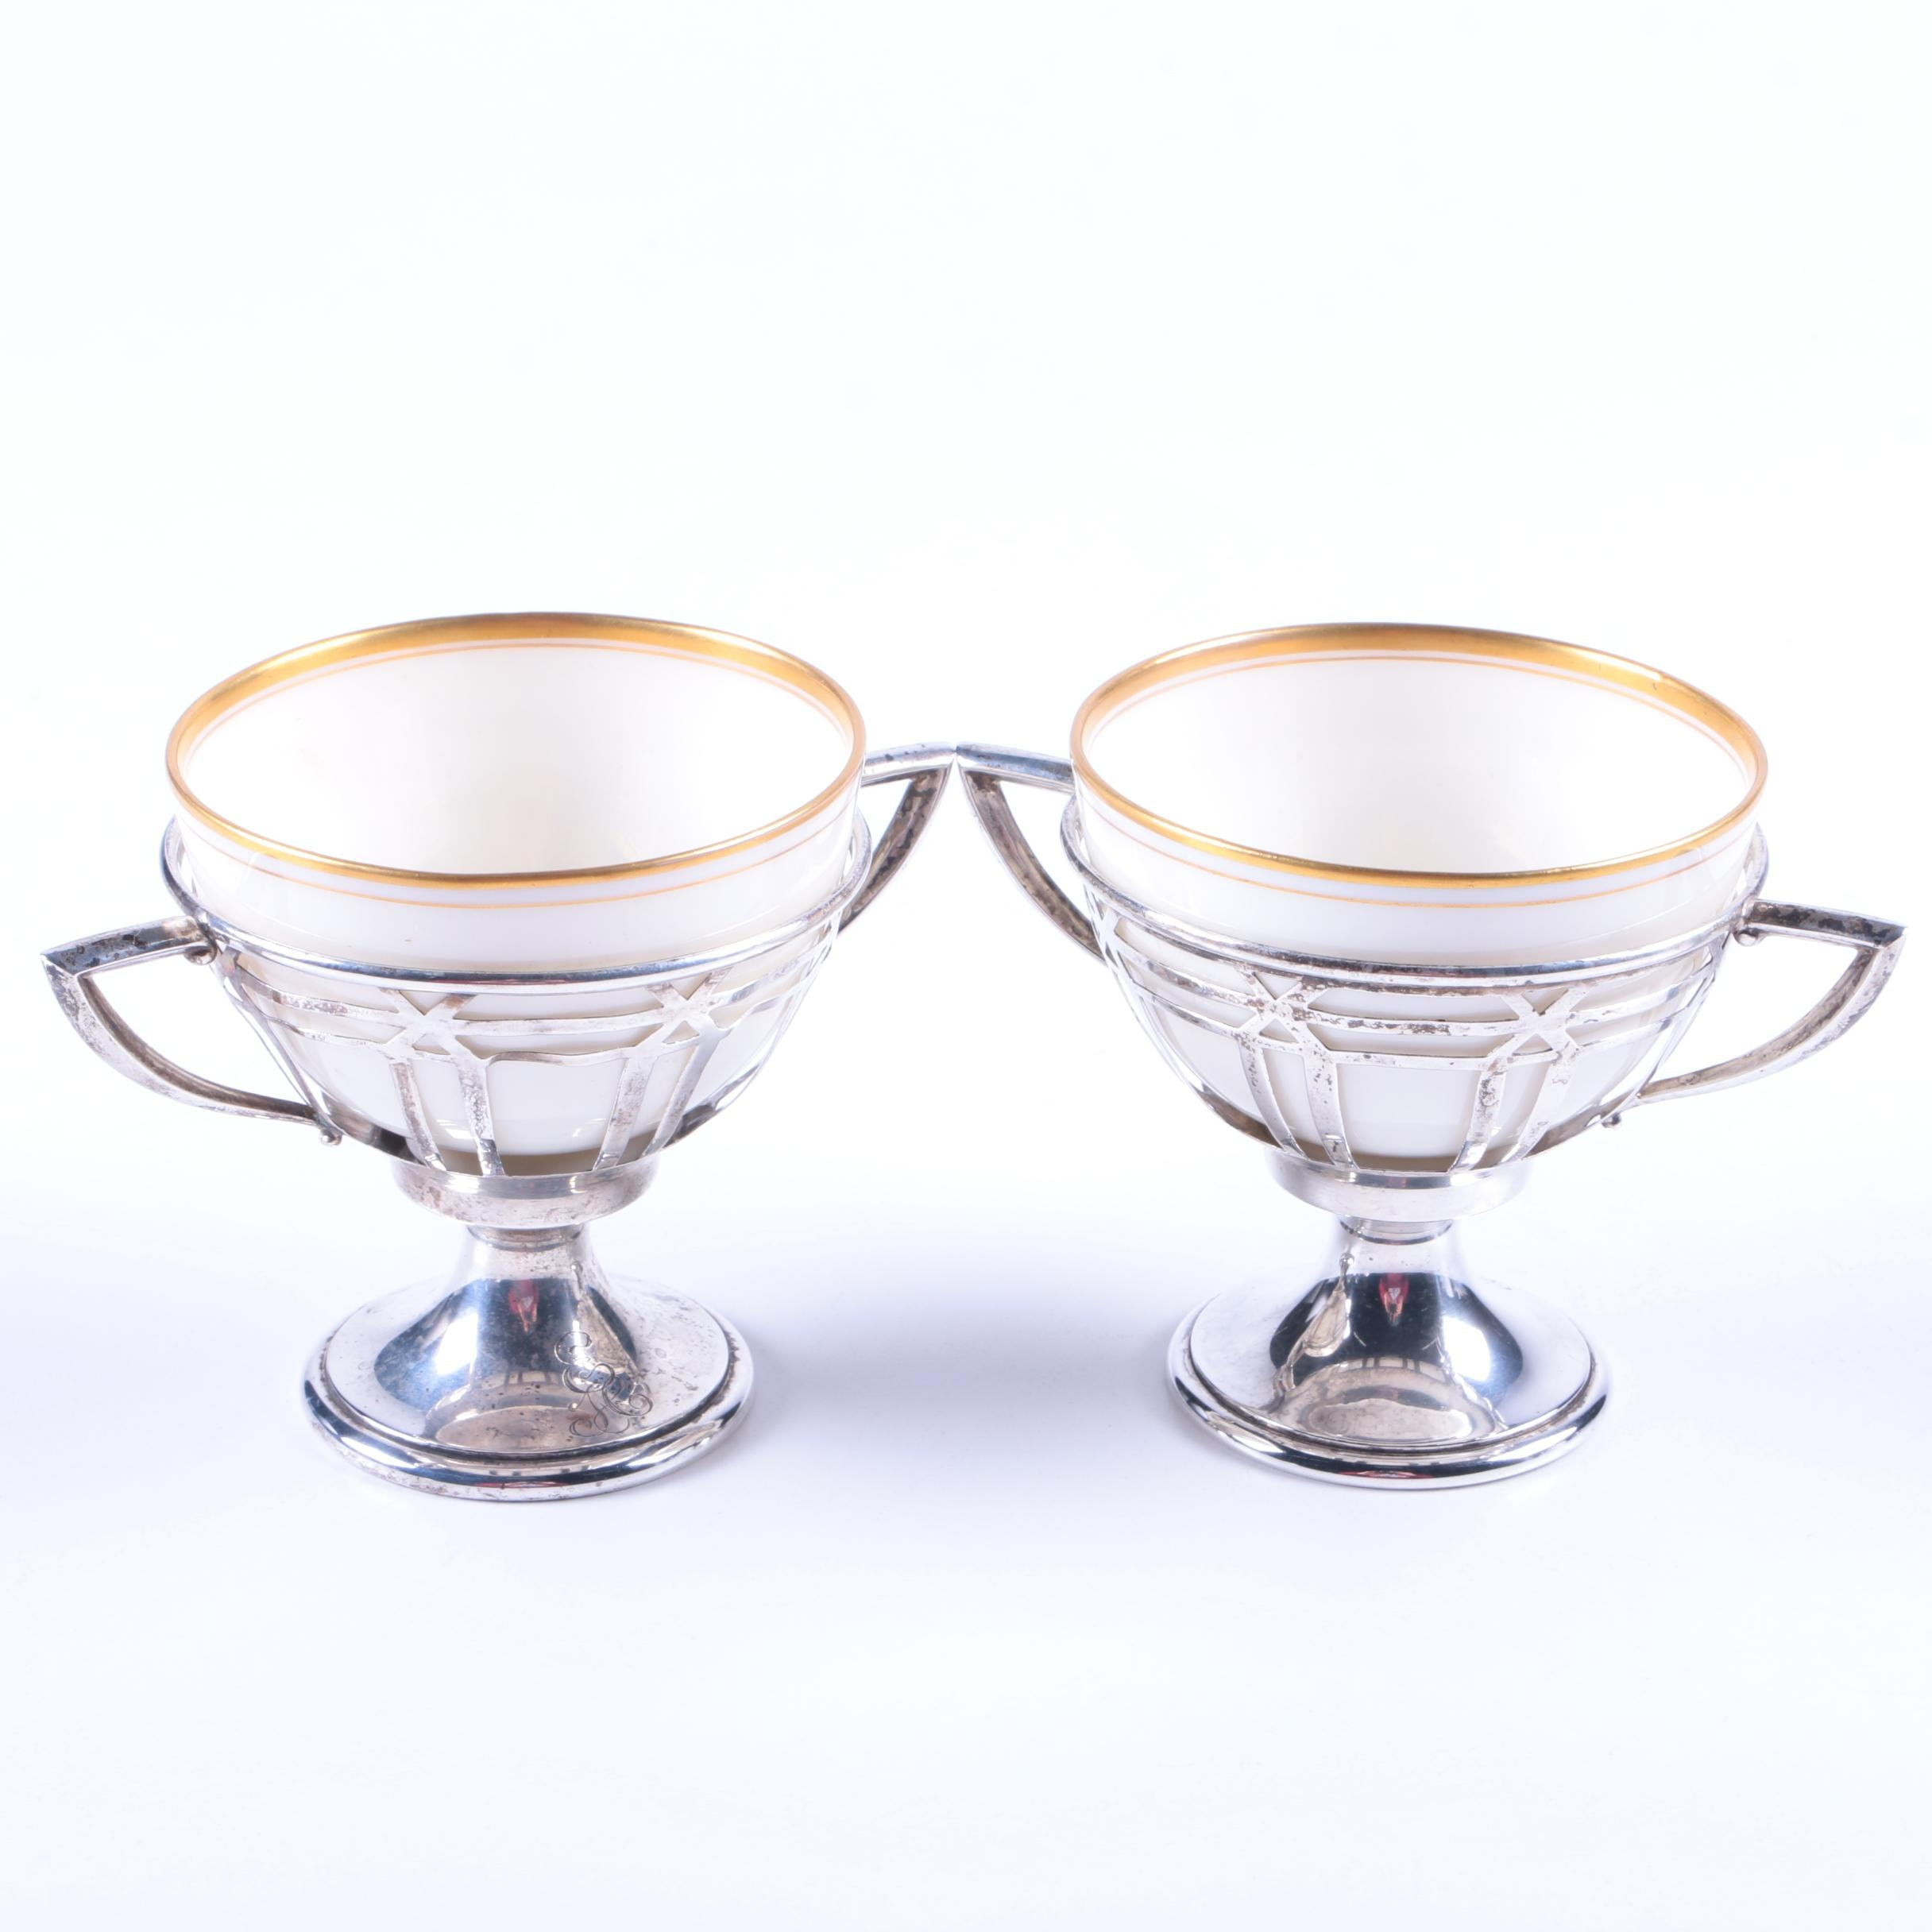 Frank M. Whiting & Co. Sterling Sherbet Cups with Lenox Porcelain Liners